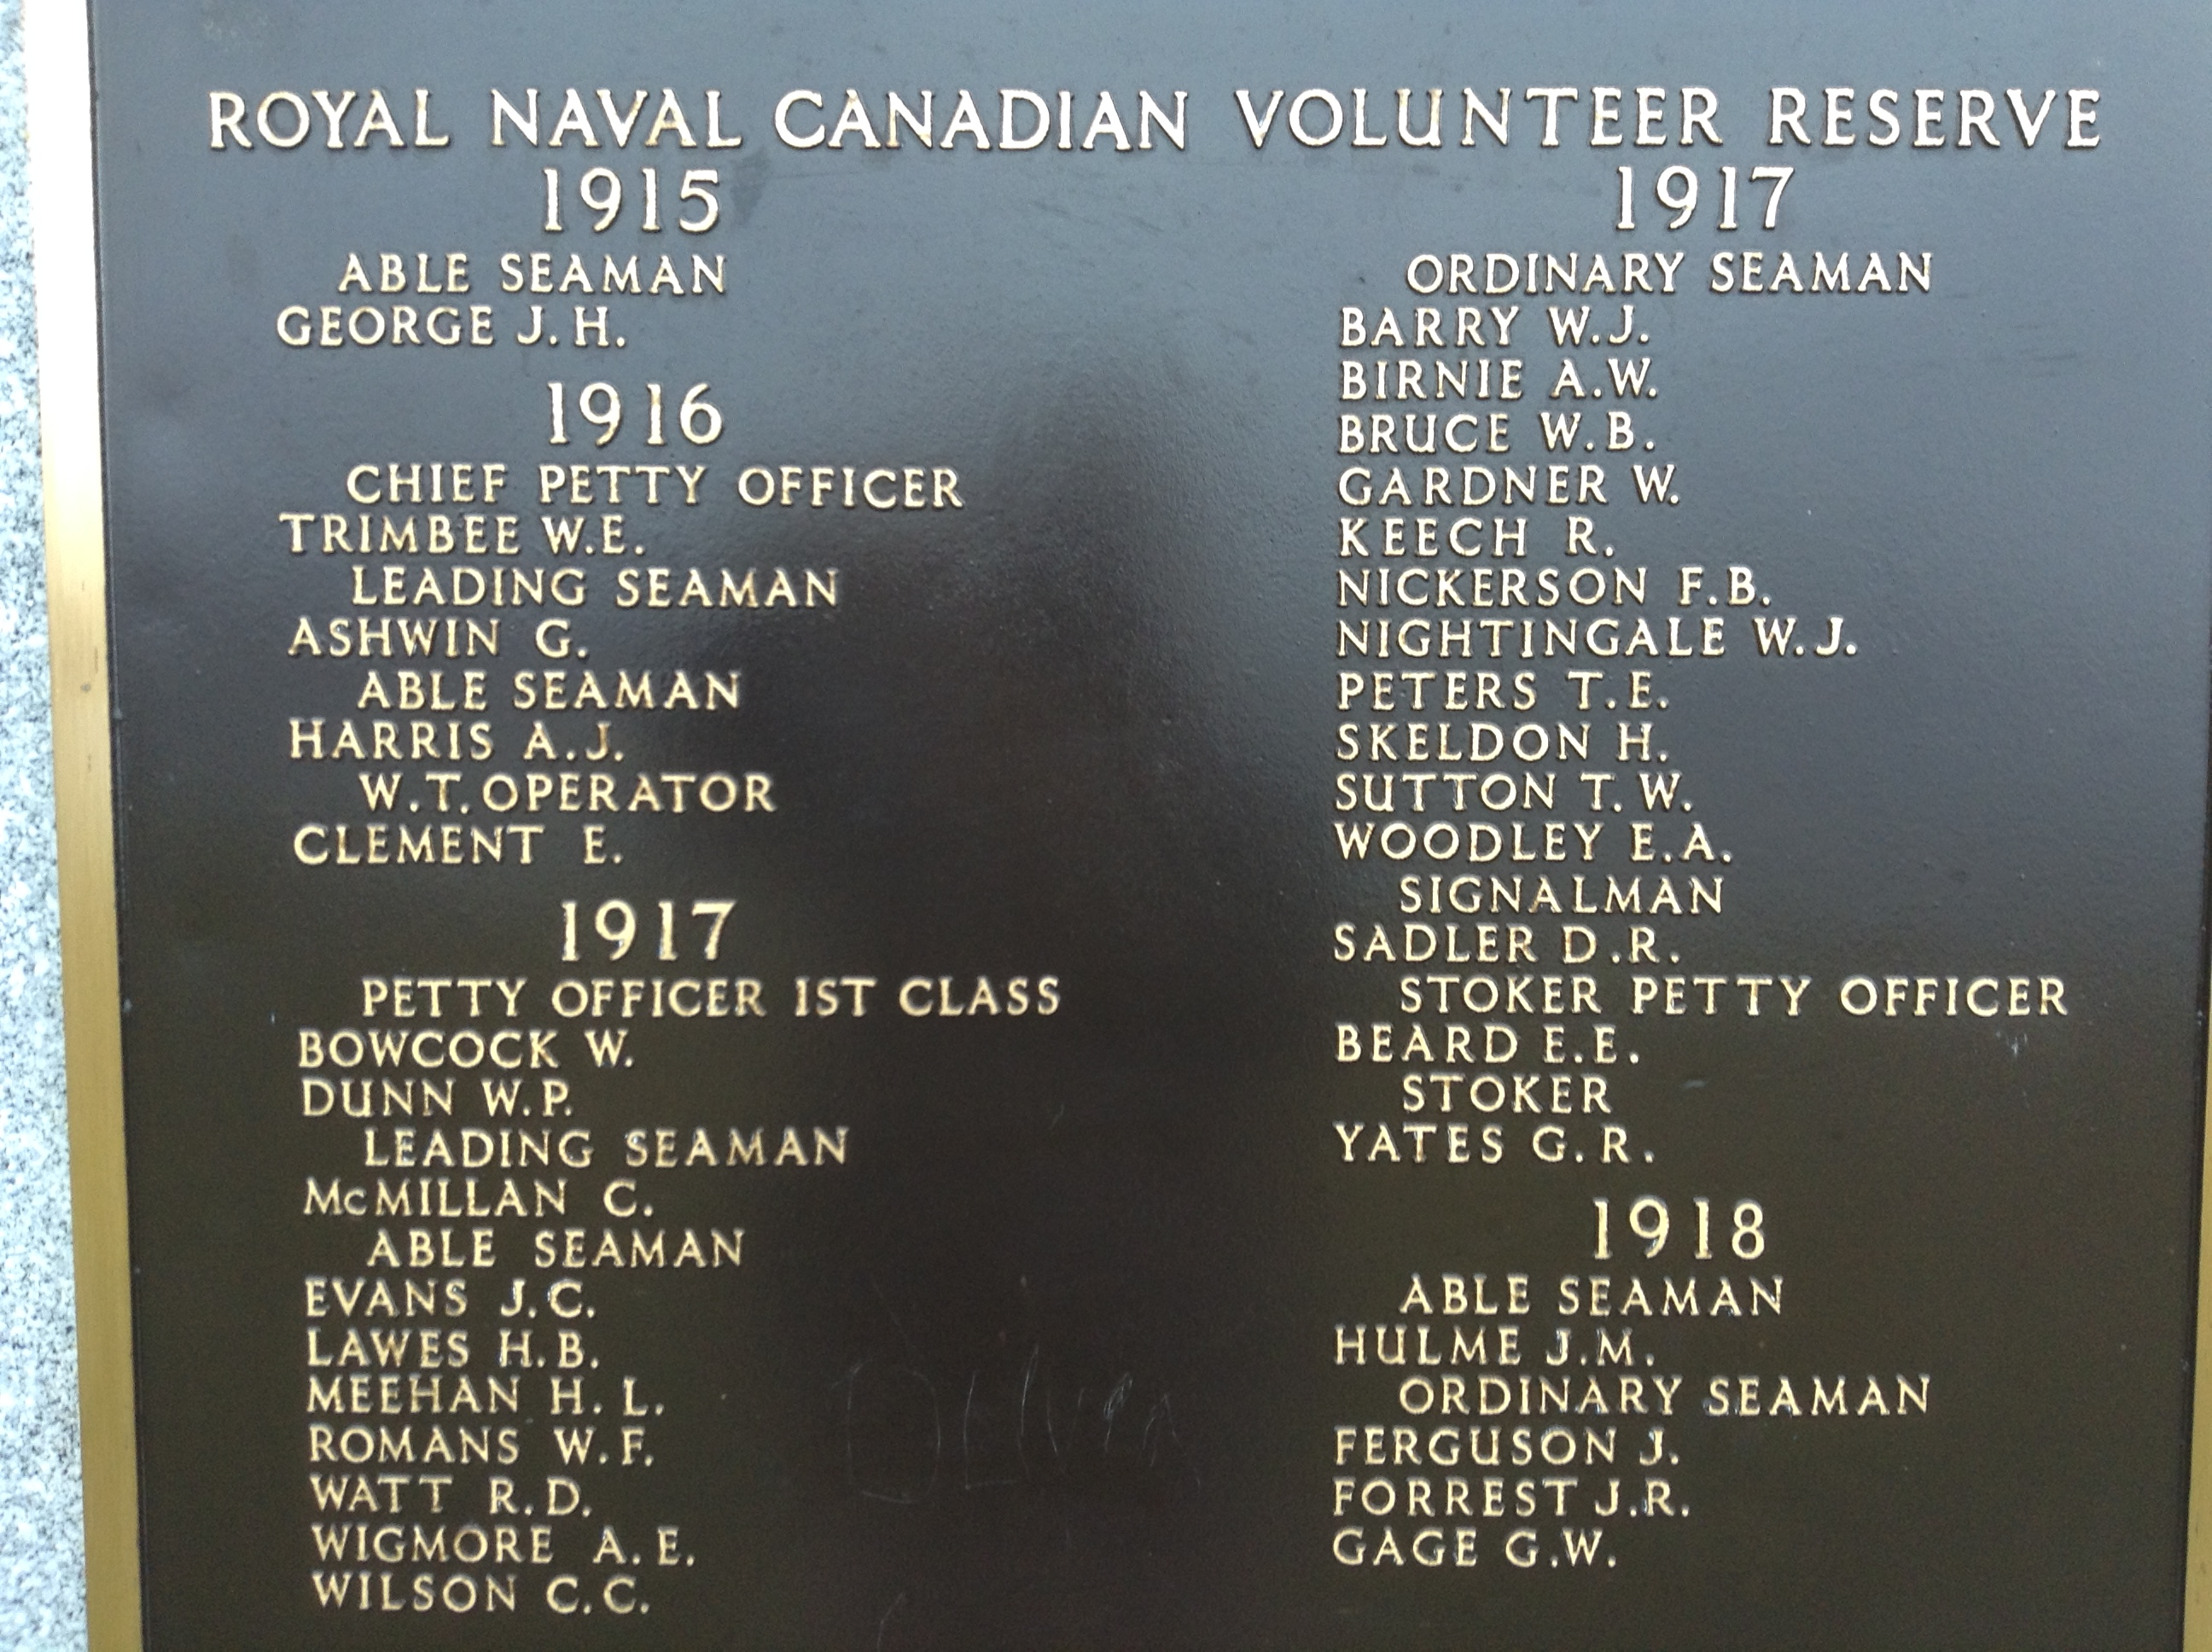 Memorial Plaque– The panel on the Halifax Memorial at Point Pleasant in Halifax, Nova Scotia, Canada, whereon Freeman Burnley Nickerson's name is inscribed. Image taken November 2017 by Tom Tulloch.